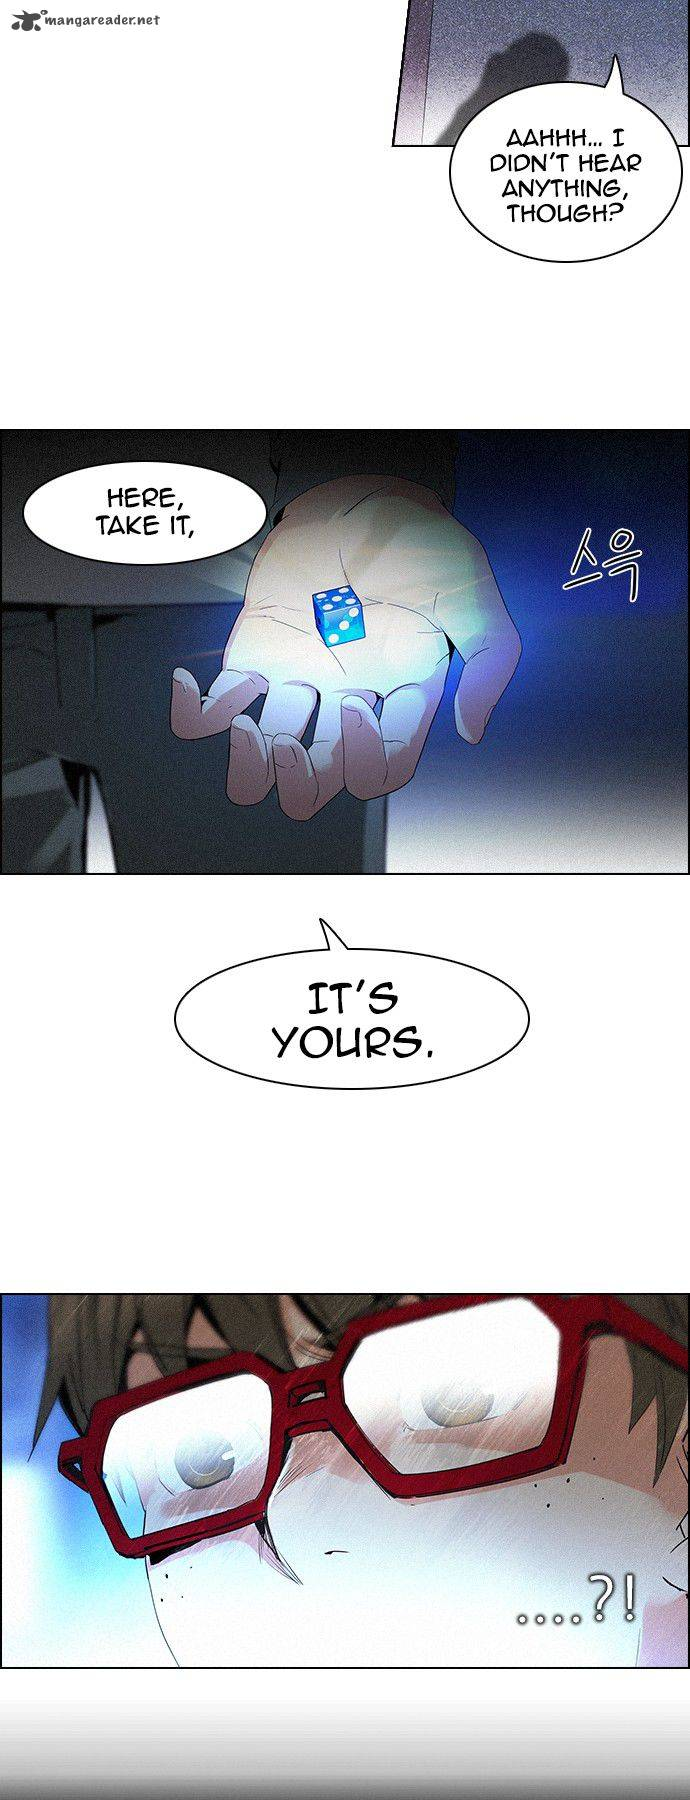 dice_the_cube_that_changes_everything_93_17